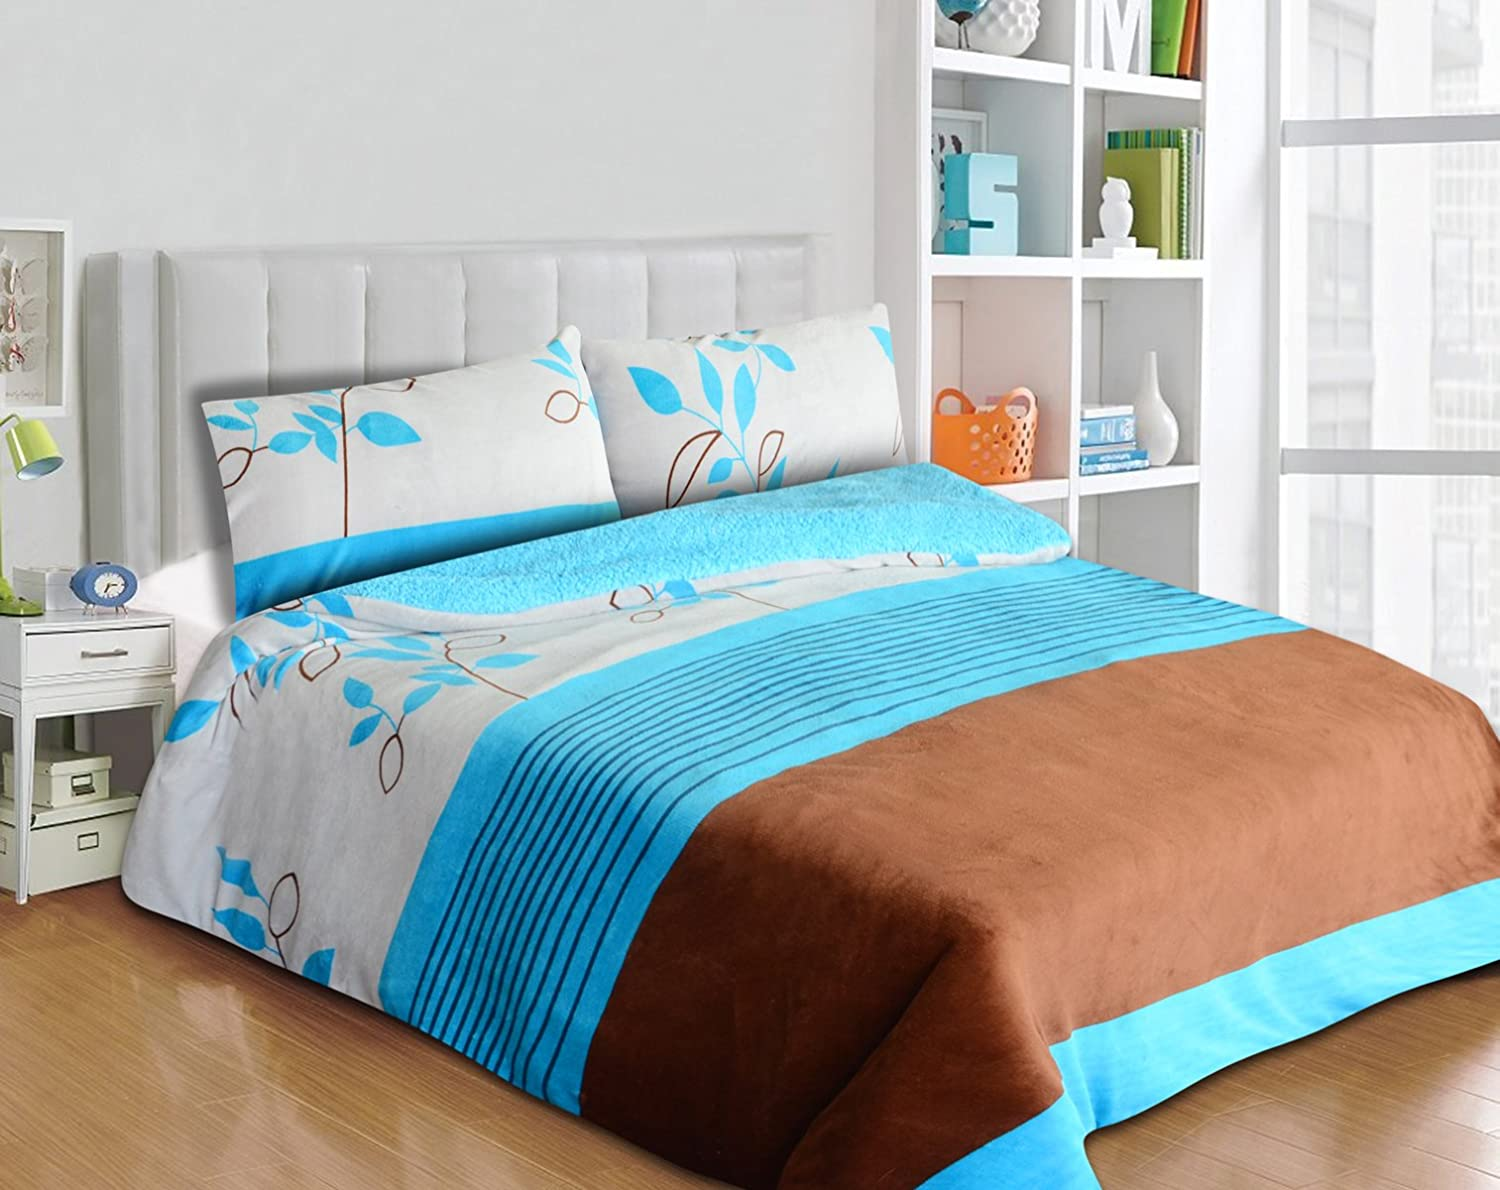 3pc Borrego/ Sherpa Blanket Queen/ King Size (Turquoise/Brown)